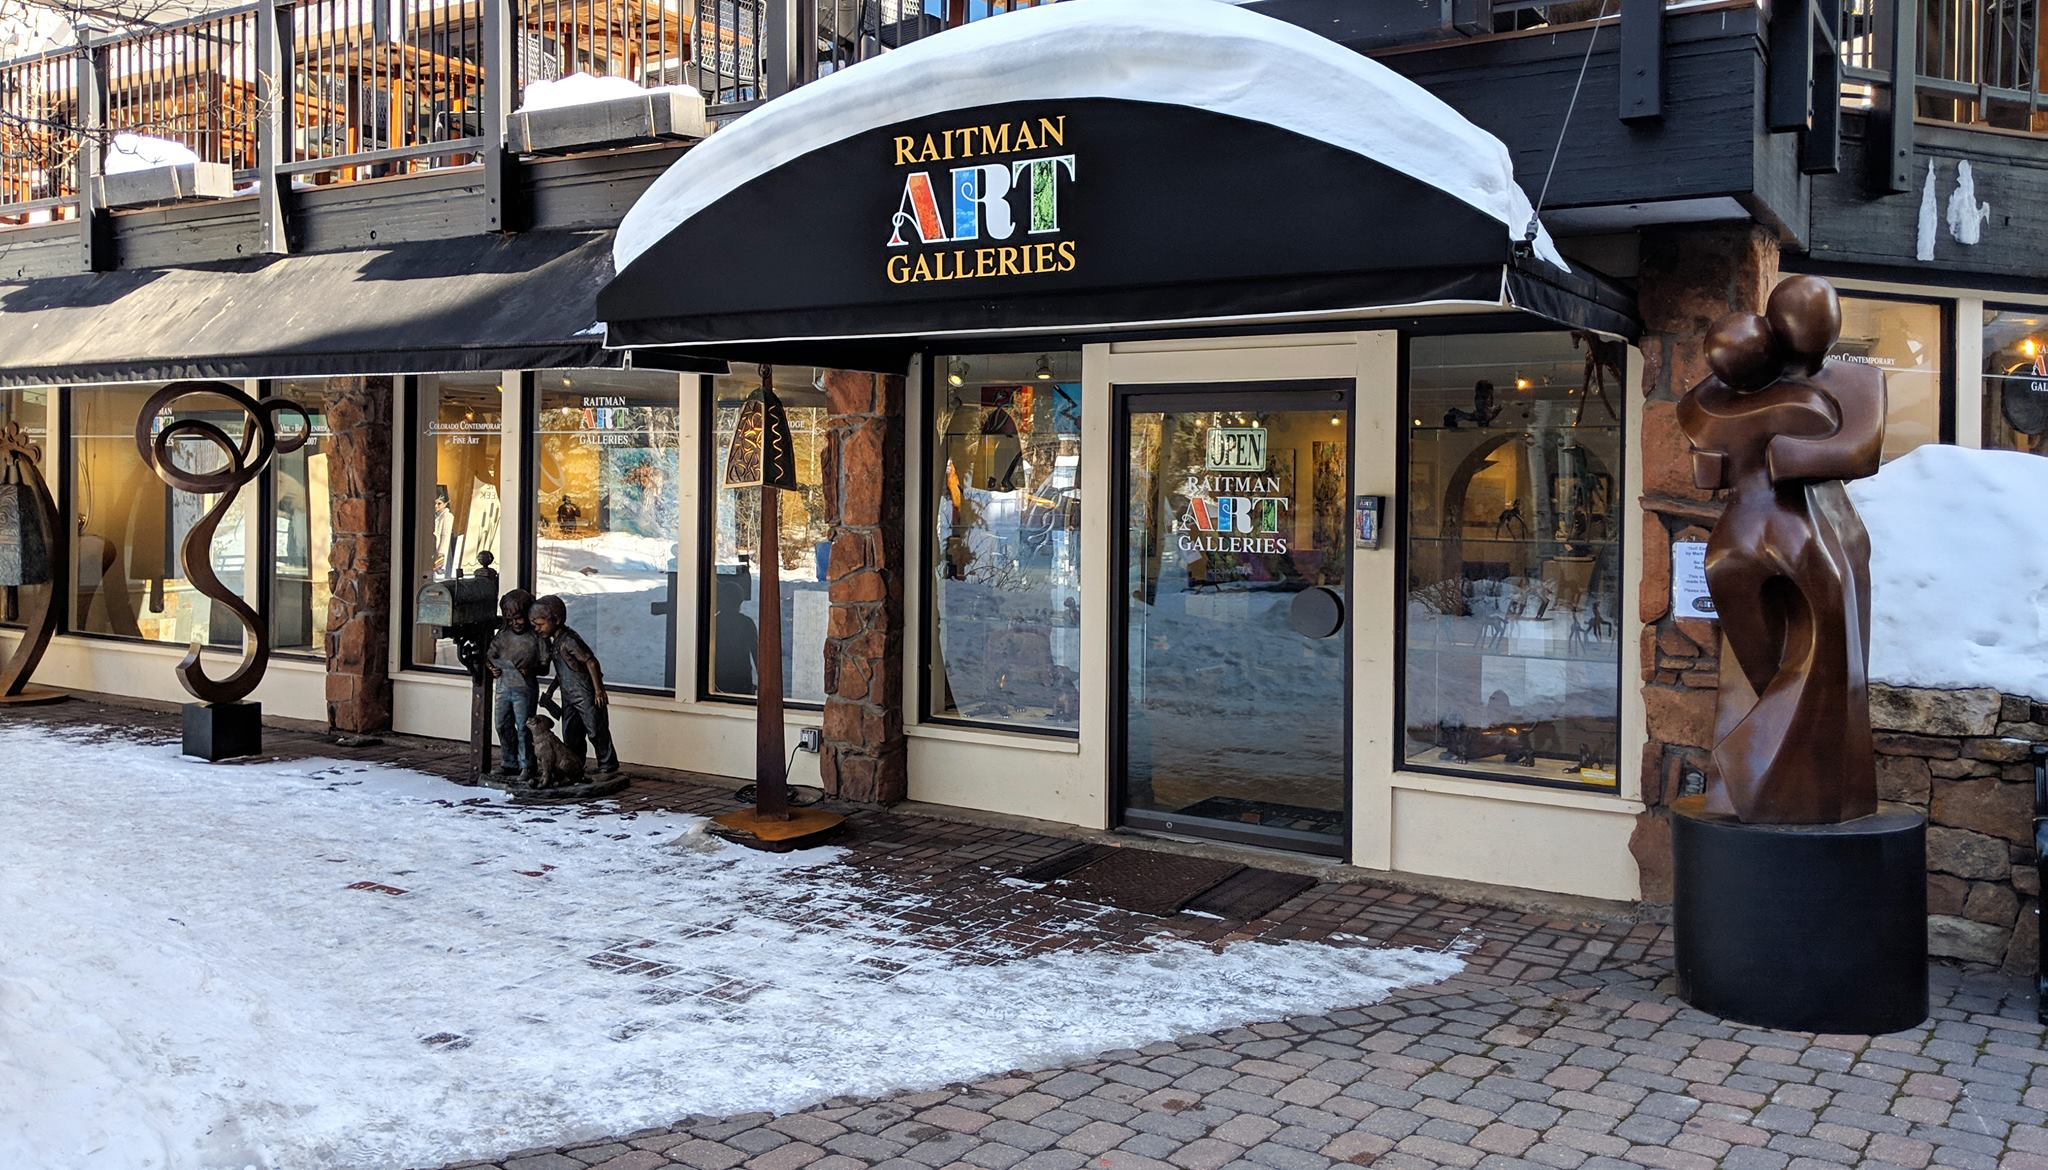 Raitman Art Galleries Vail, Colorado. Featuring Fine Paintings and Sculptures by World Renowned Artists